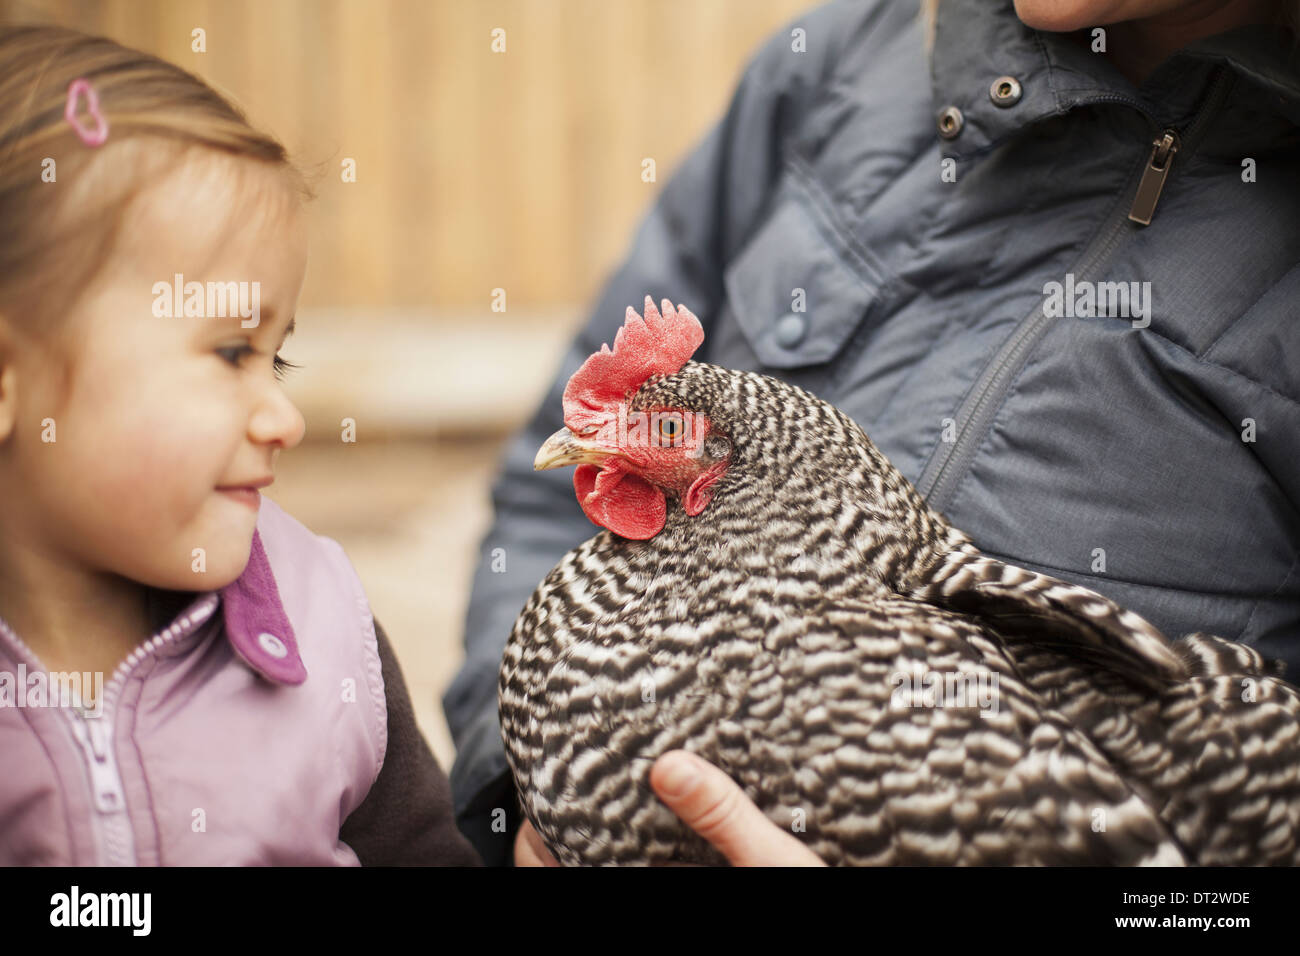 A woman holding a black and white chicken with a red coxcomb A young girl beside her holding closely at the chicken - Stock Image